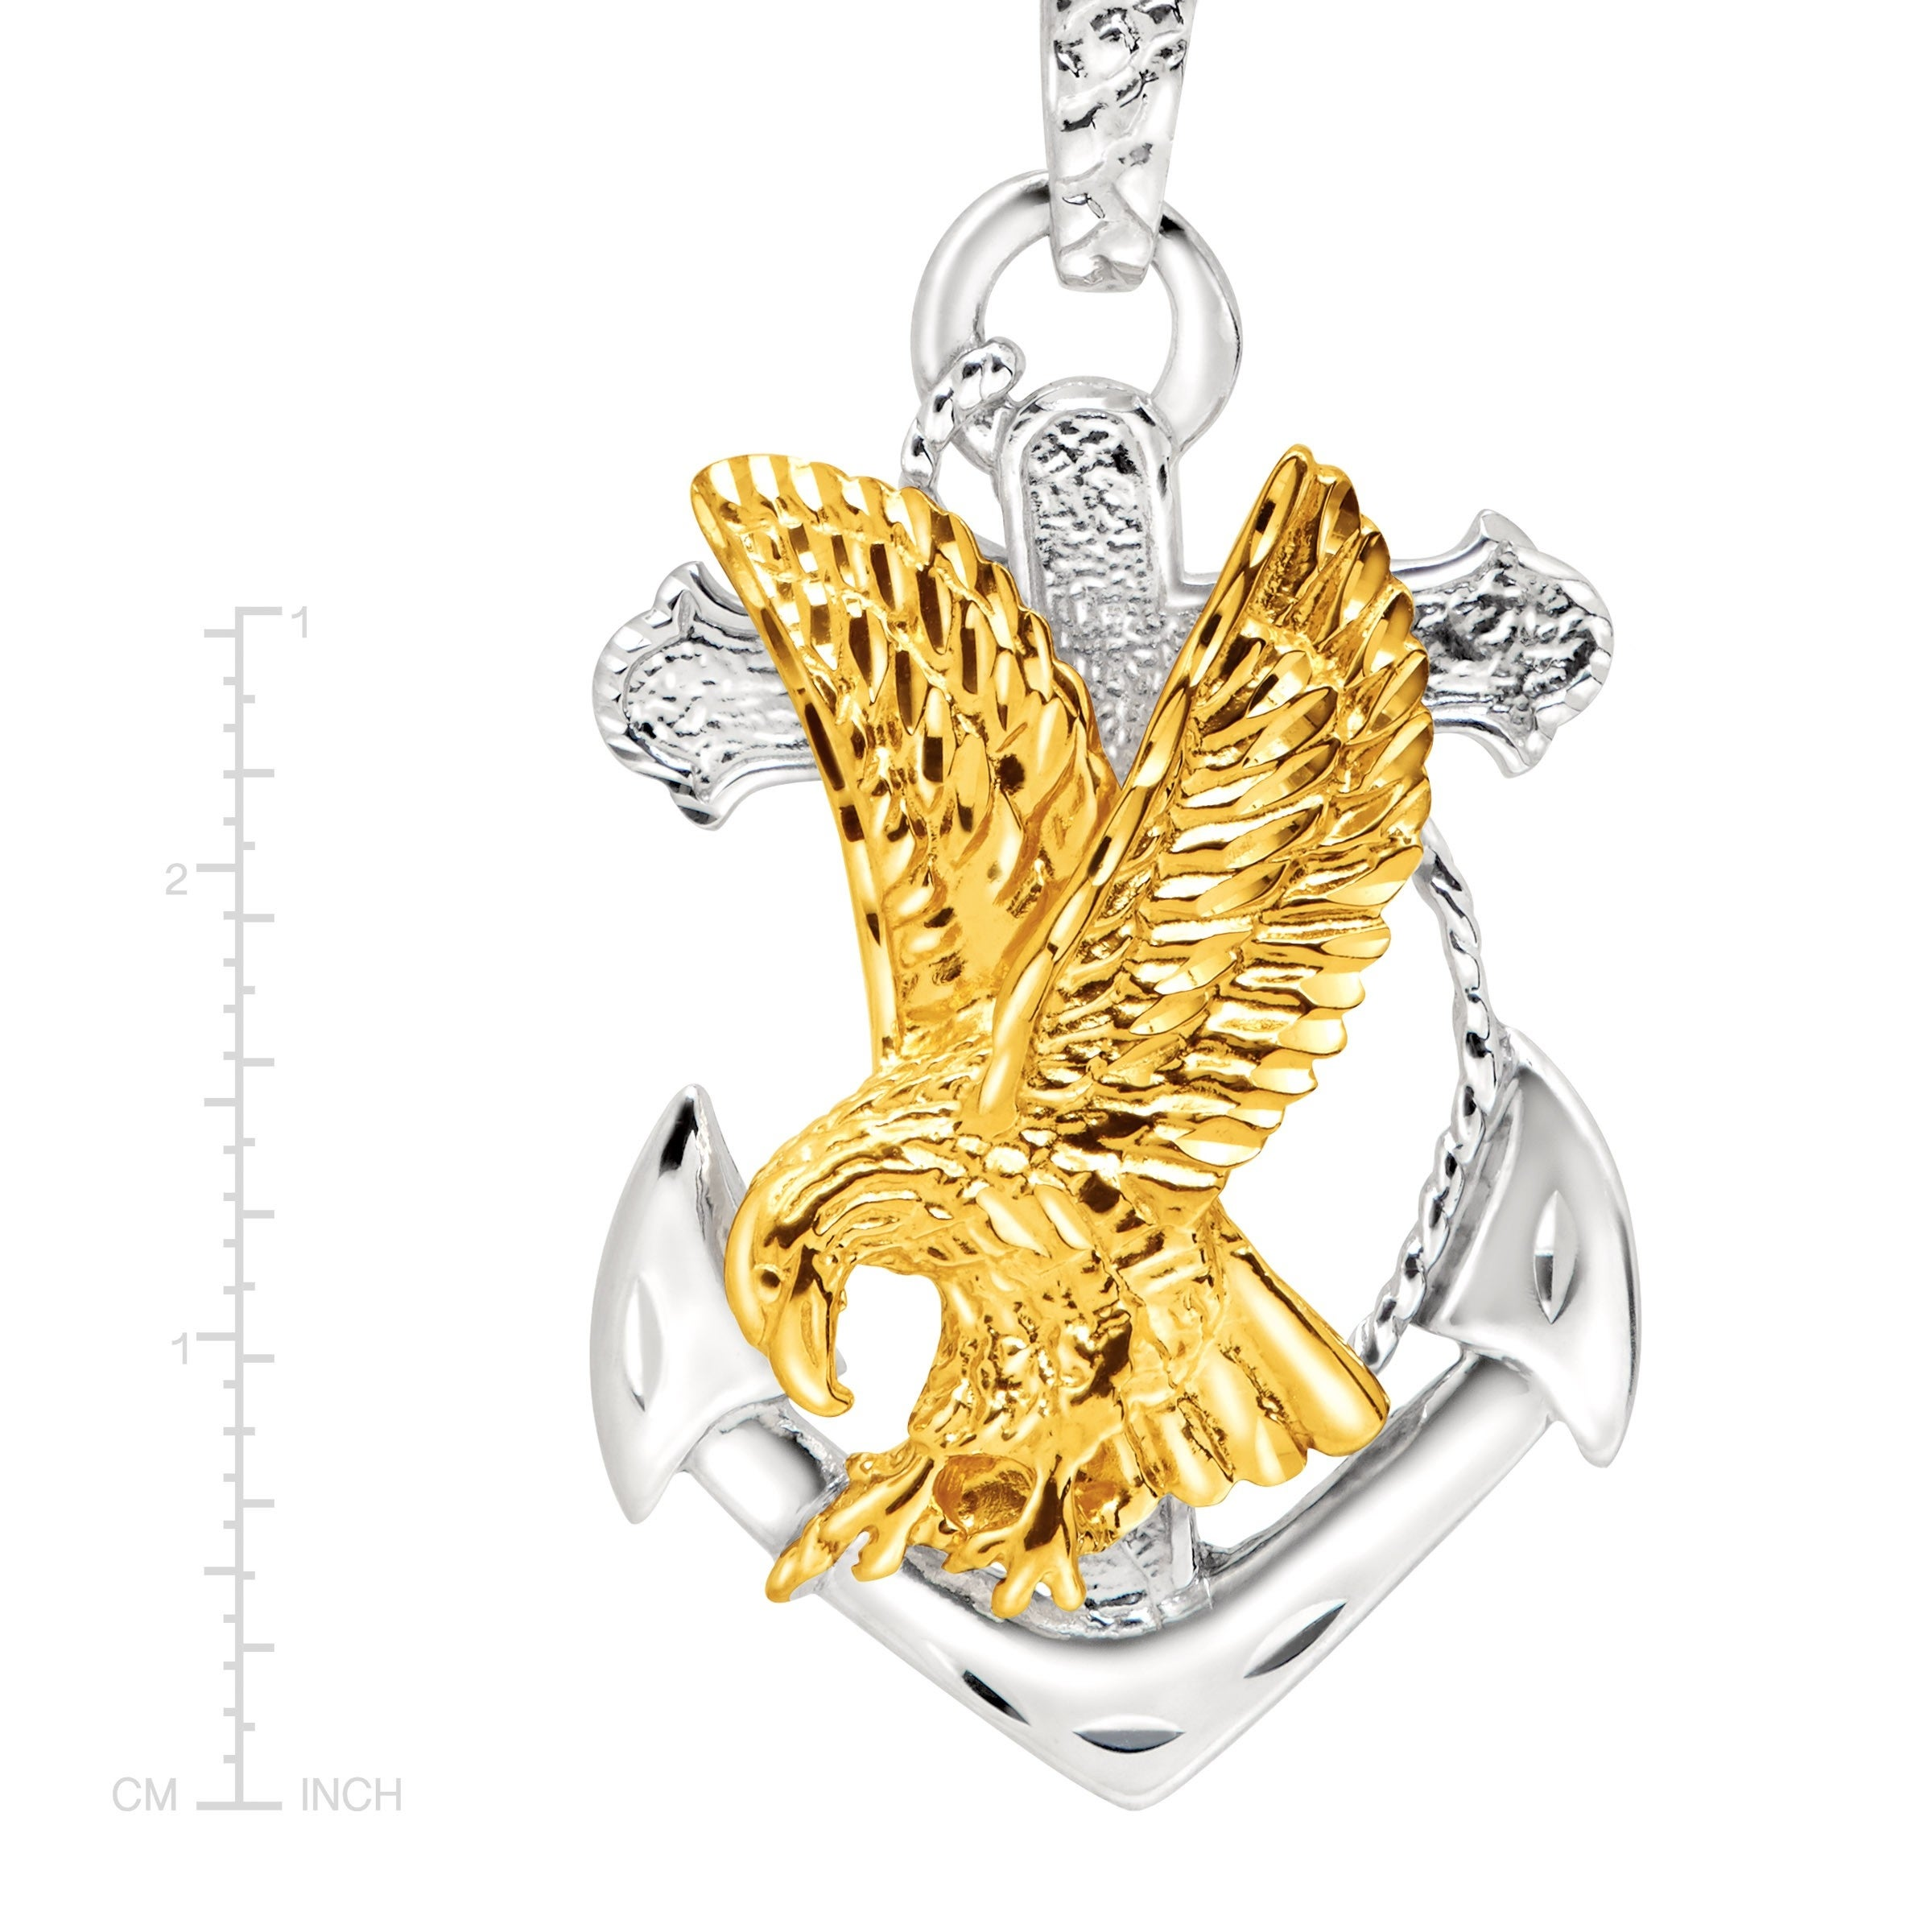 jewelry s yellow gold palmbeach products at men eagle rope tone cfm pendant detail necklace mens chain